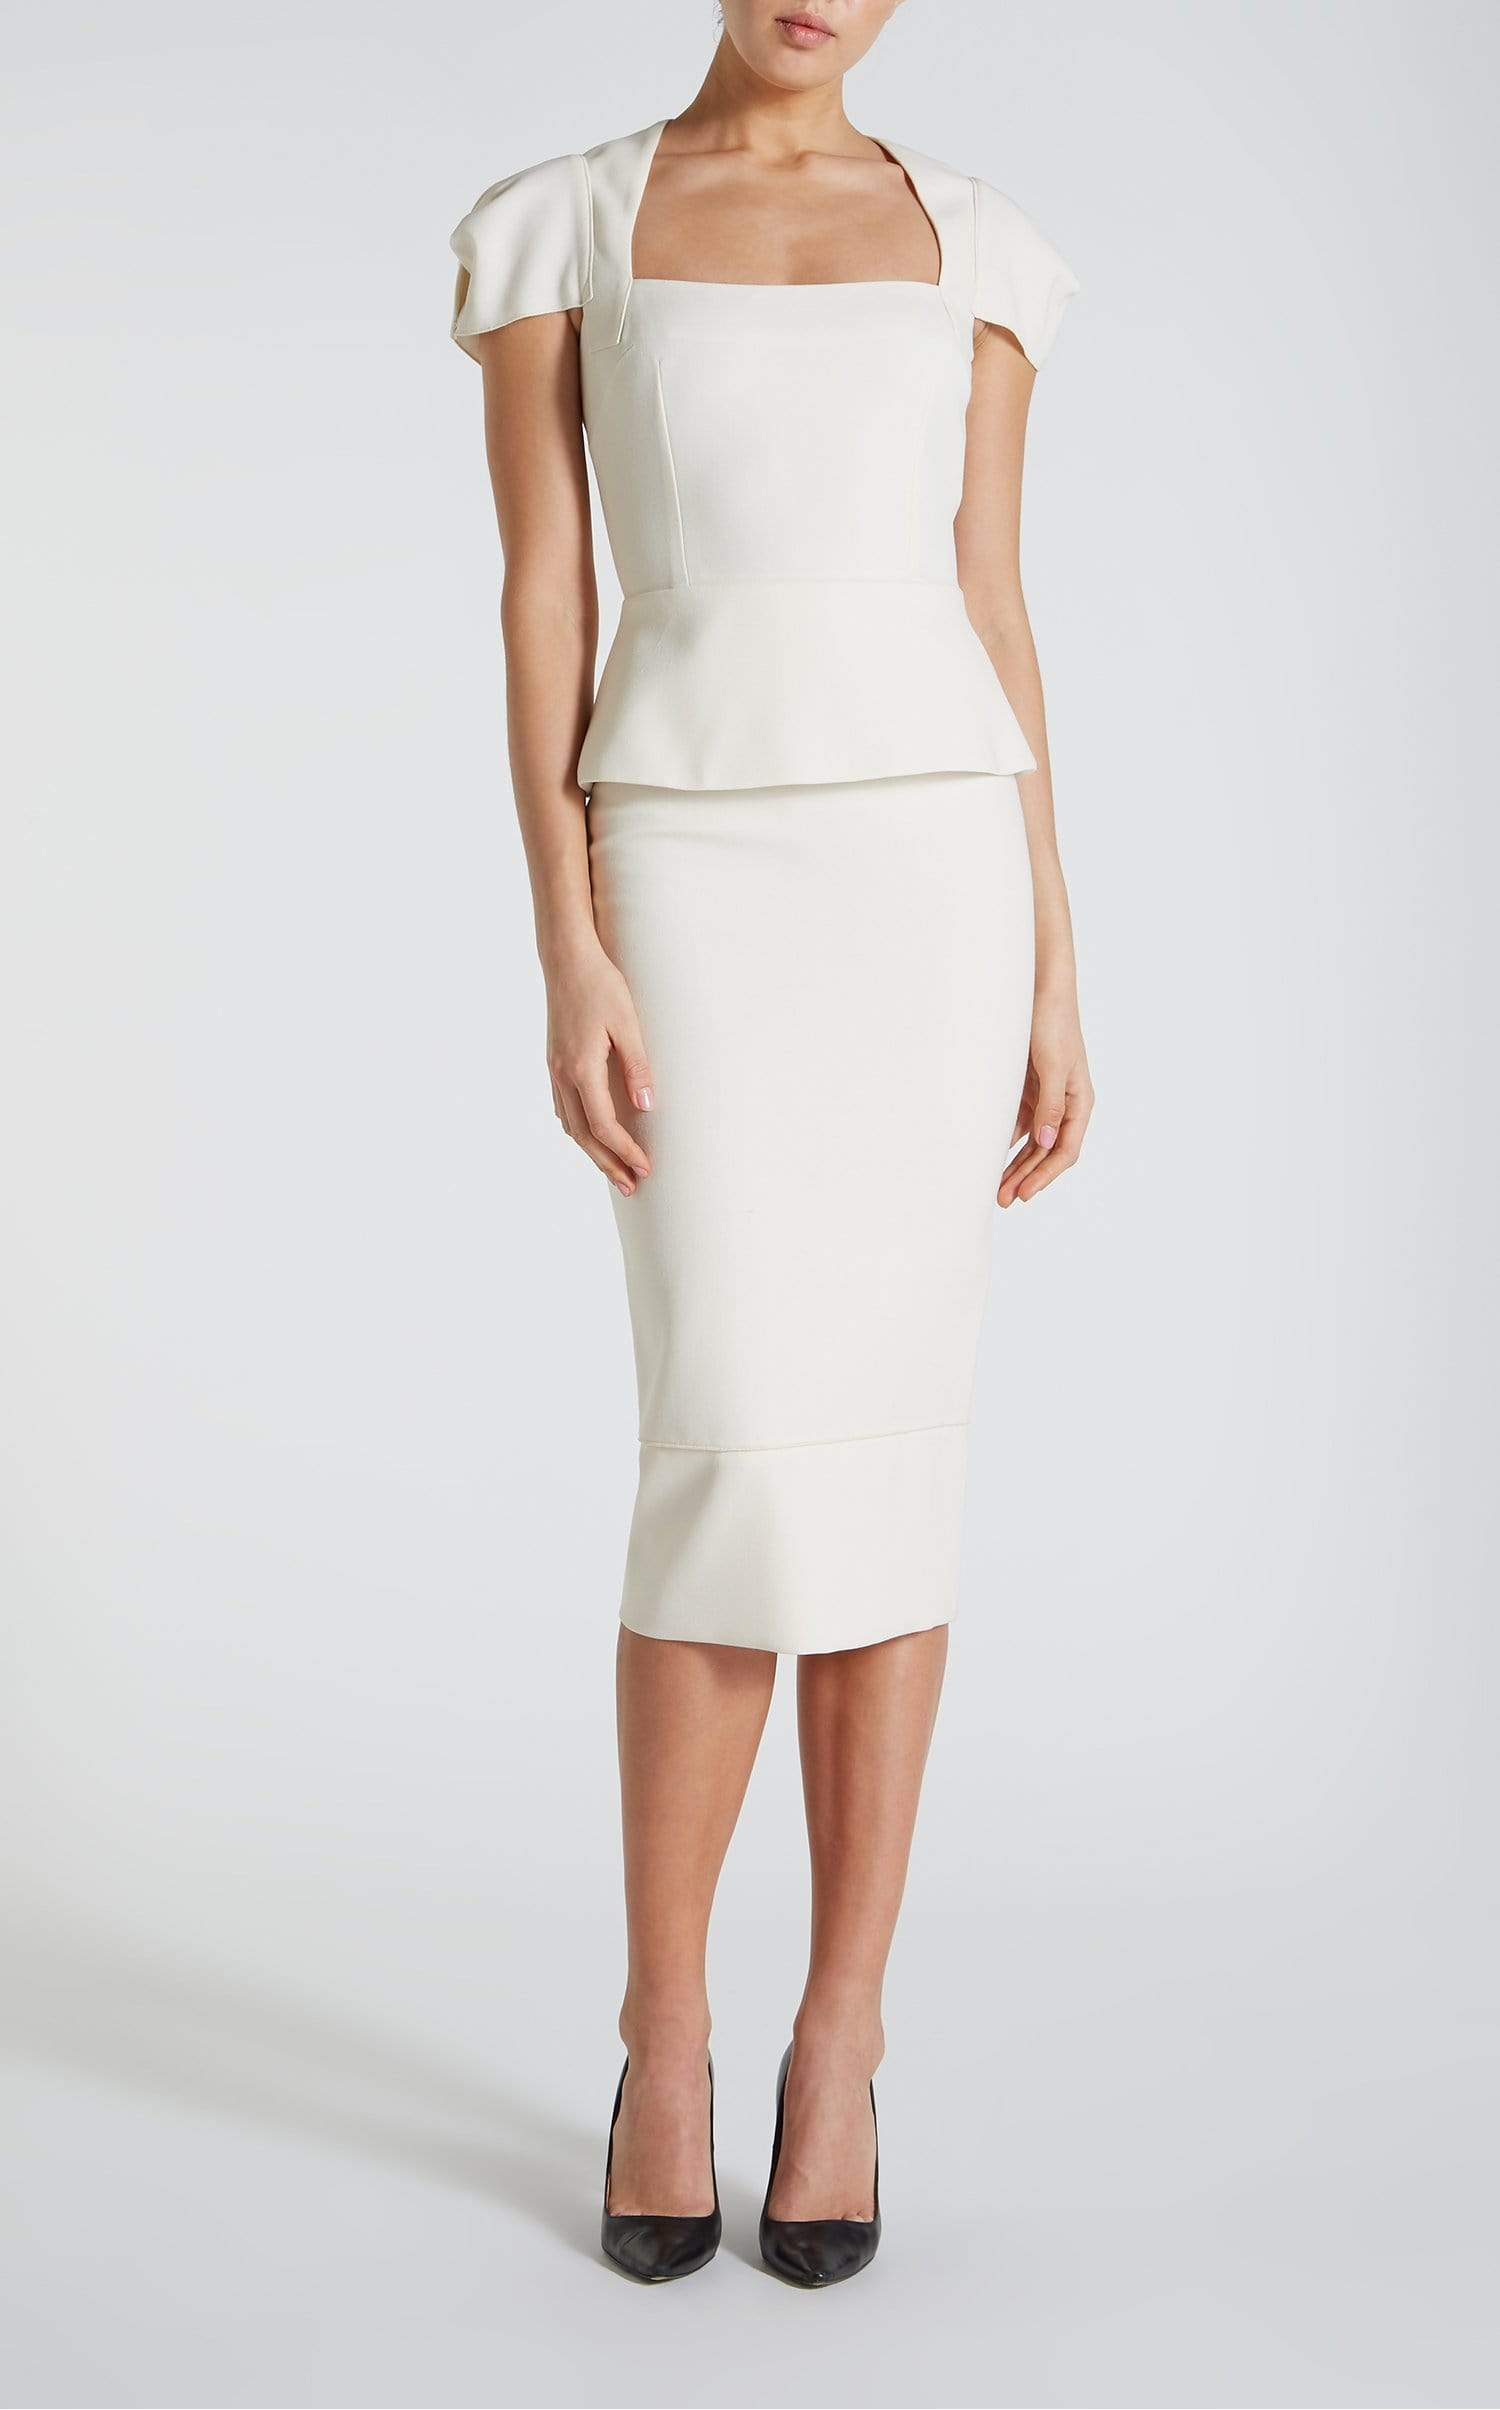 Galaxy Top In White from Roland Mouret